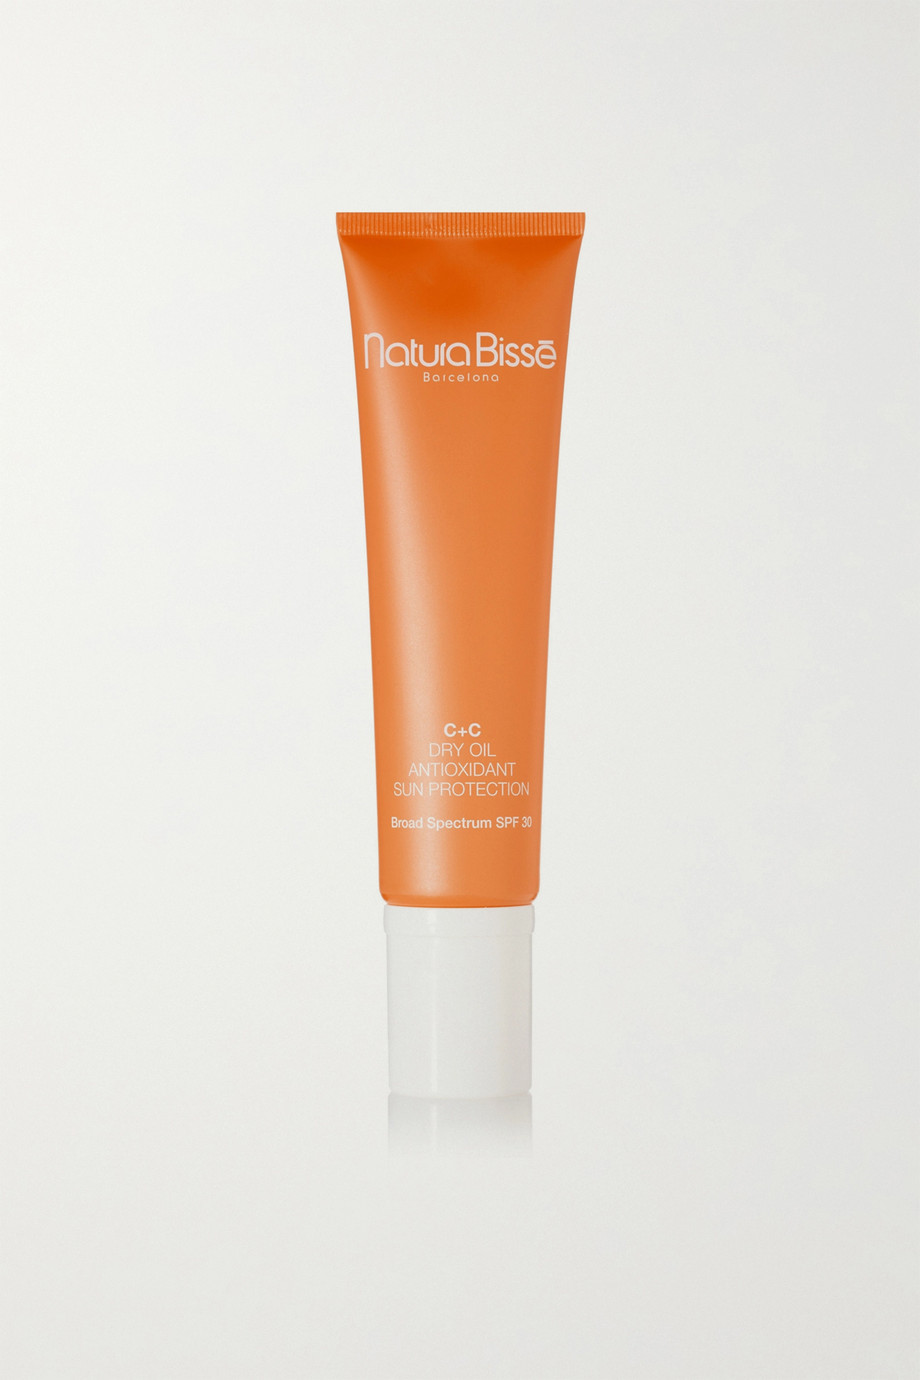 Natura Bissé C+C Dry Oil Antioxidant Sun Protection SPF30, 100ml